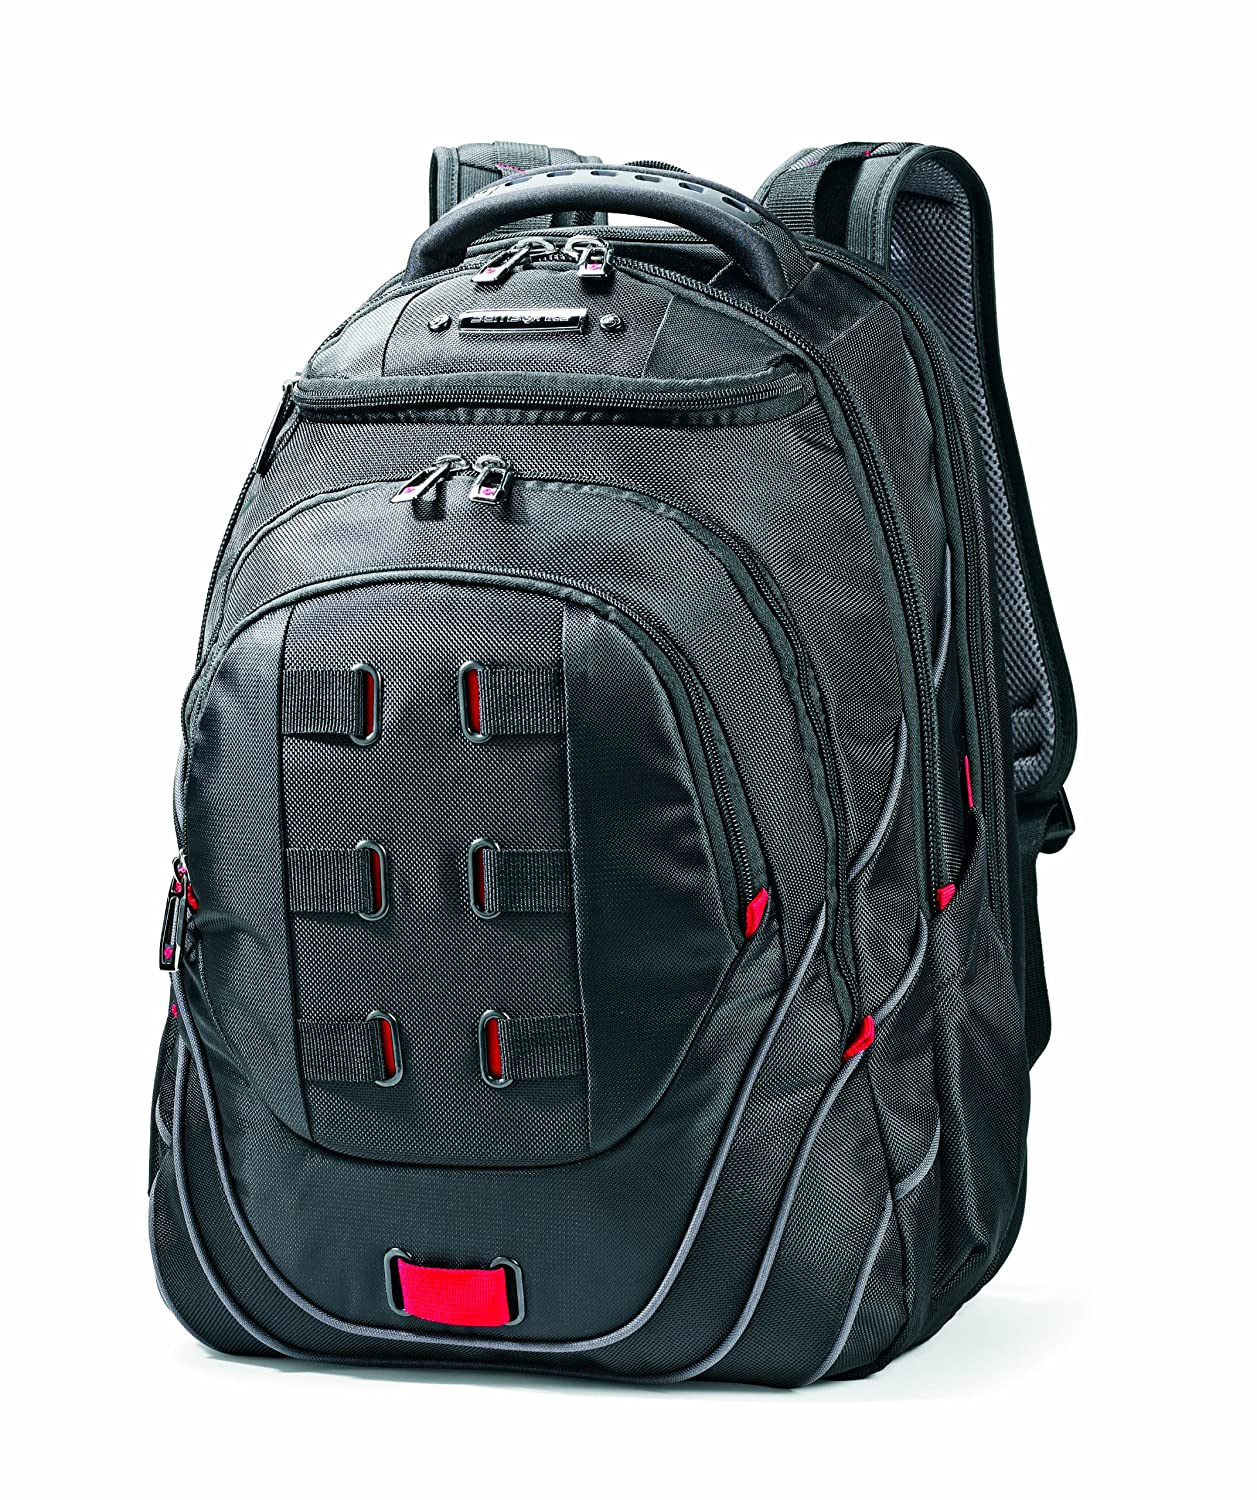 Amazon.com: Samsonite Luggage Tectonic Backpack, Black/Red, One ...